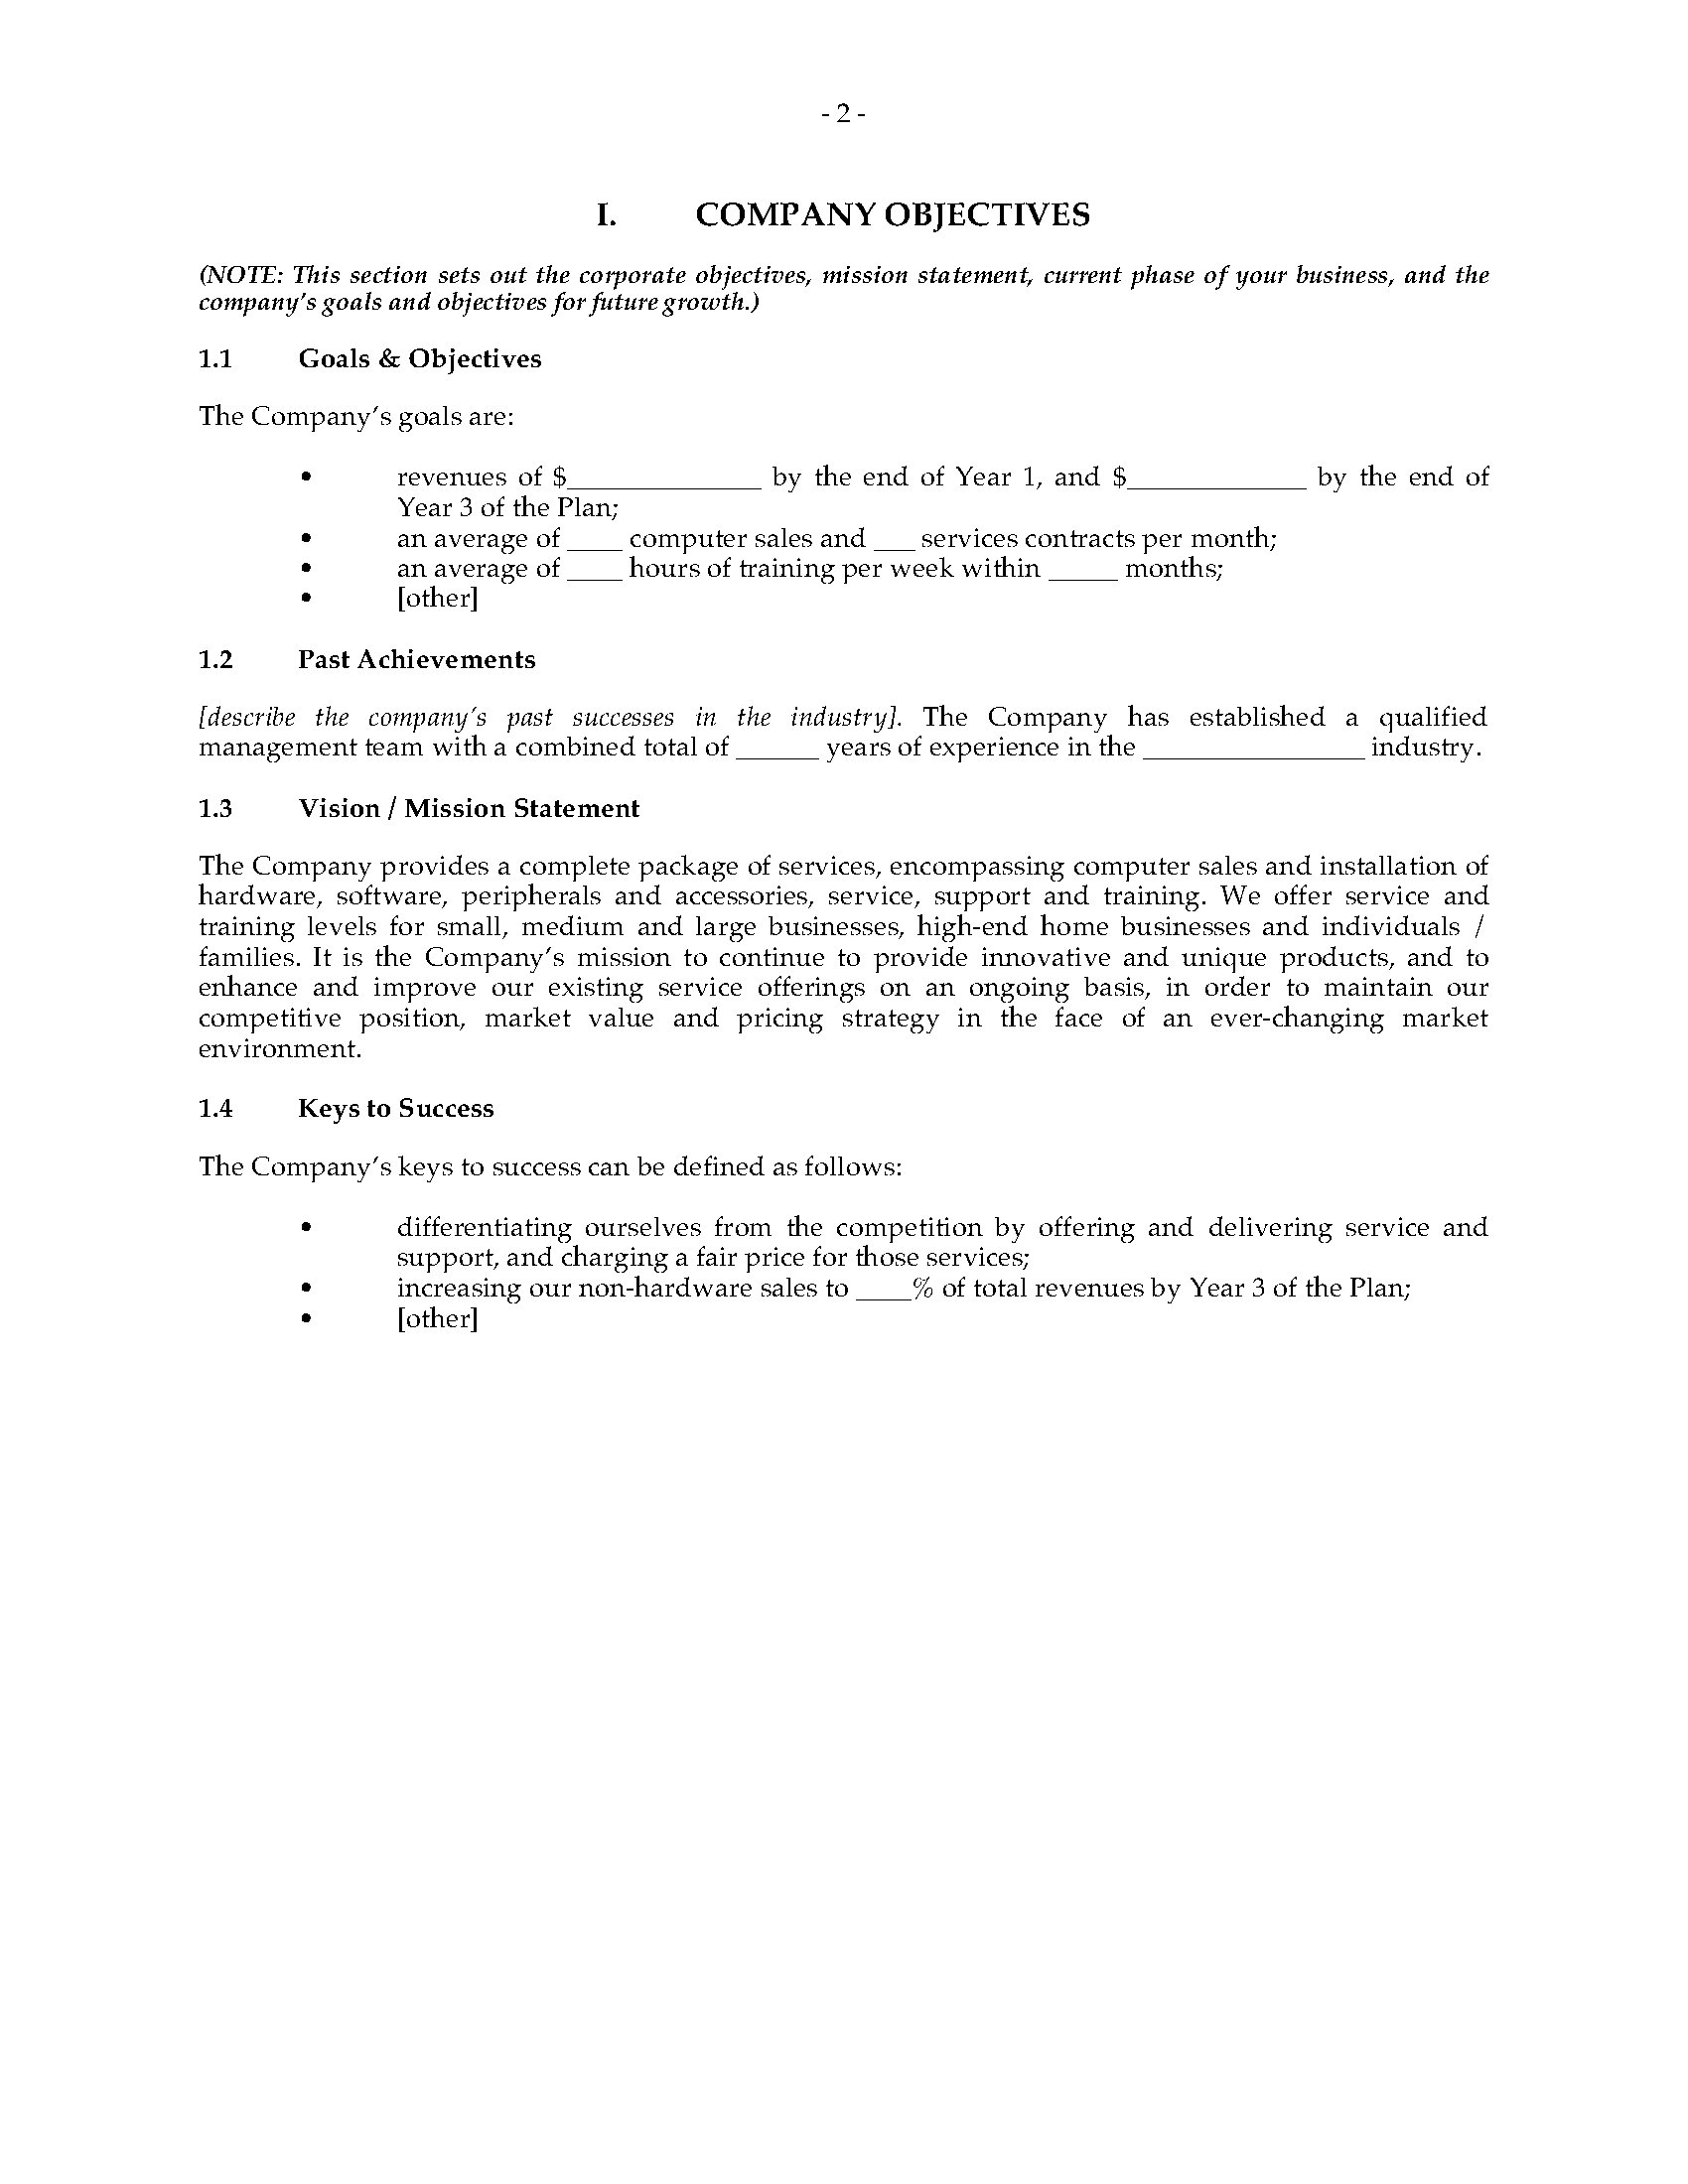 Literature review what to include picture 5